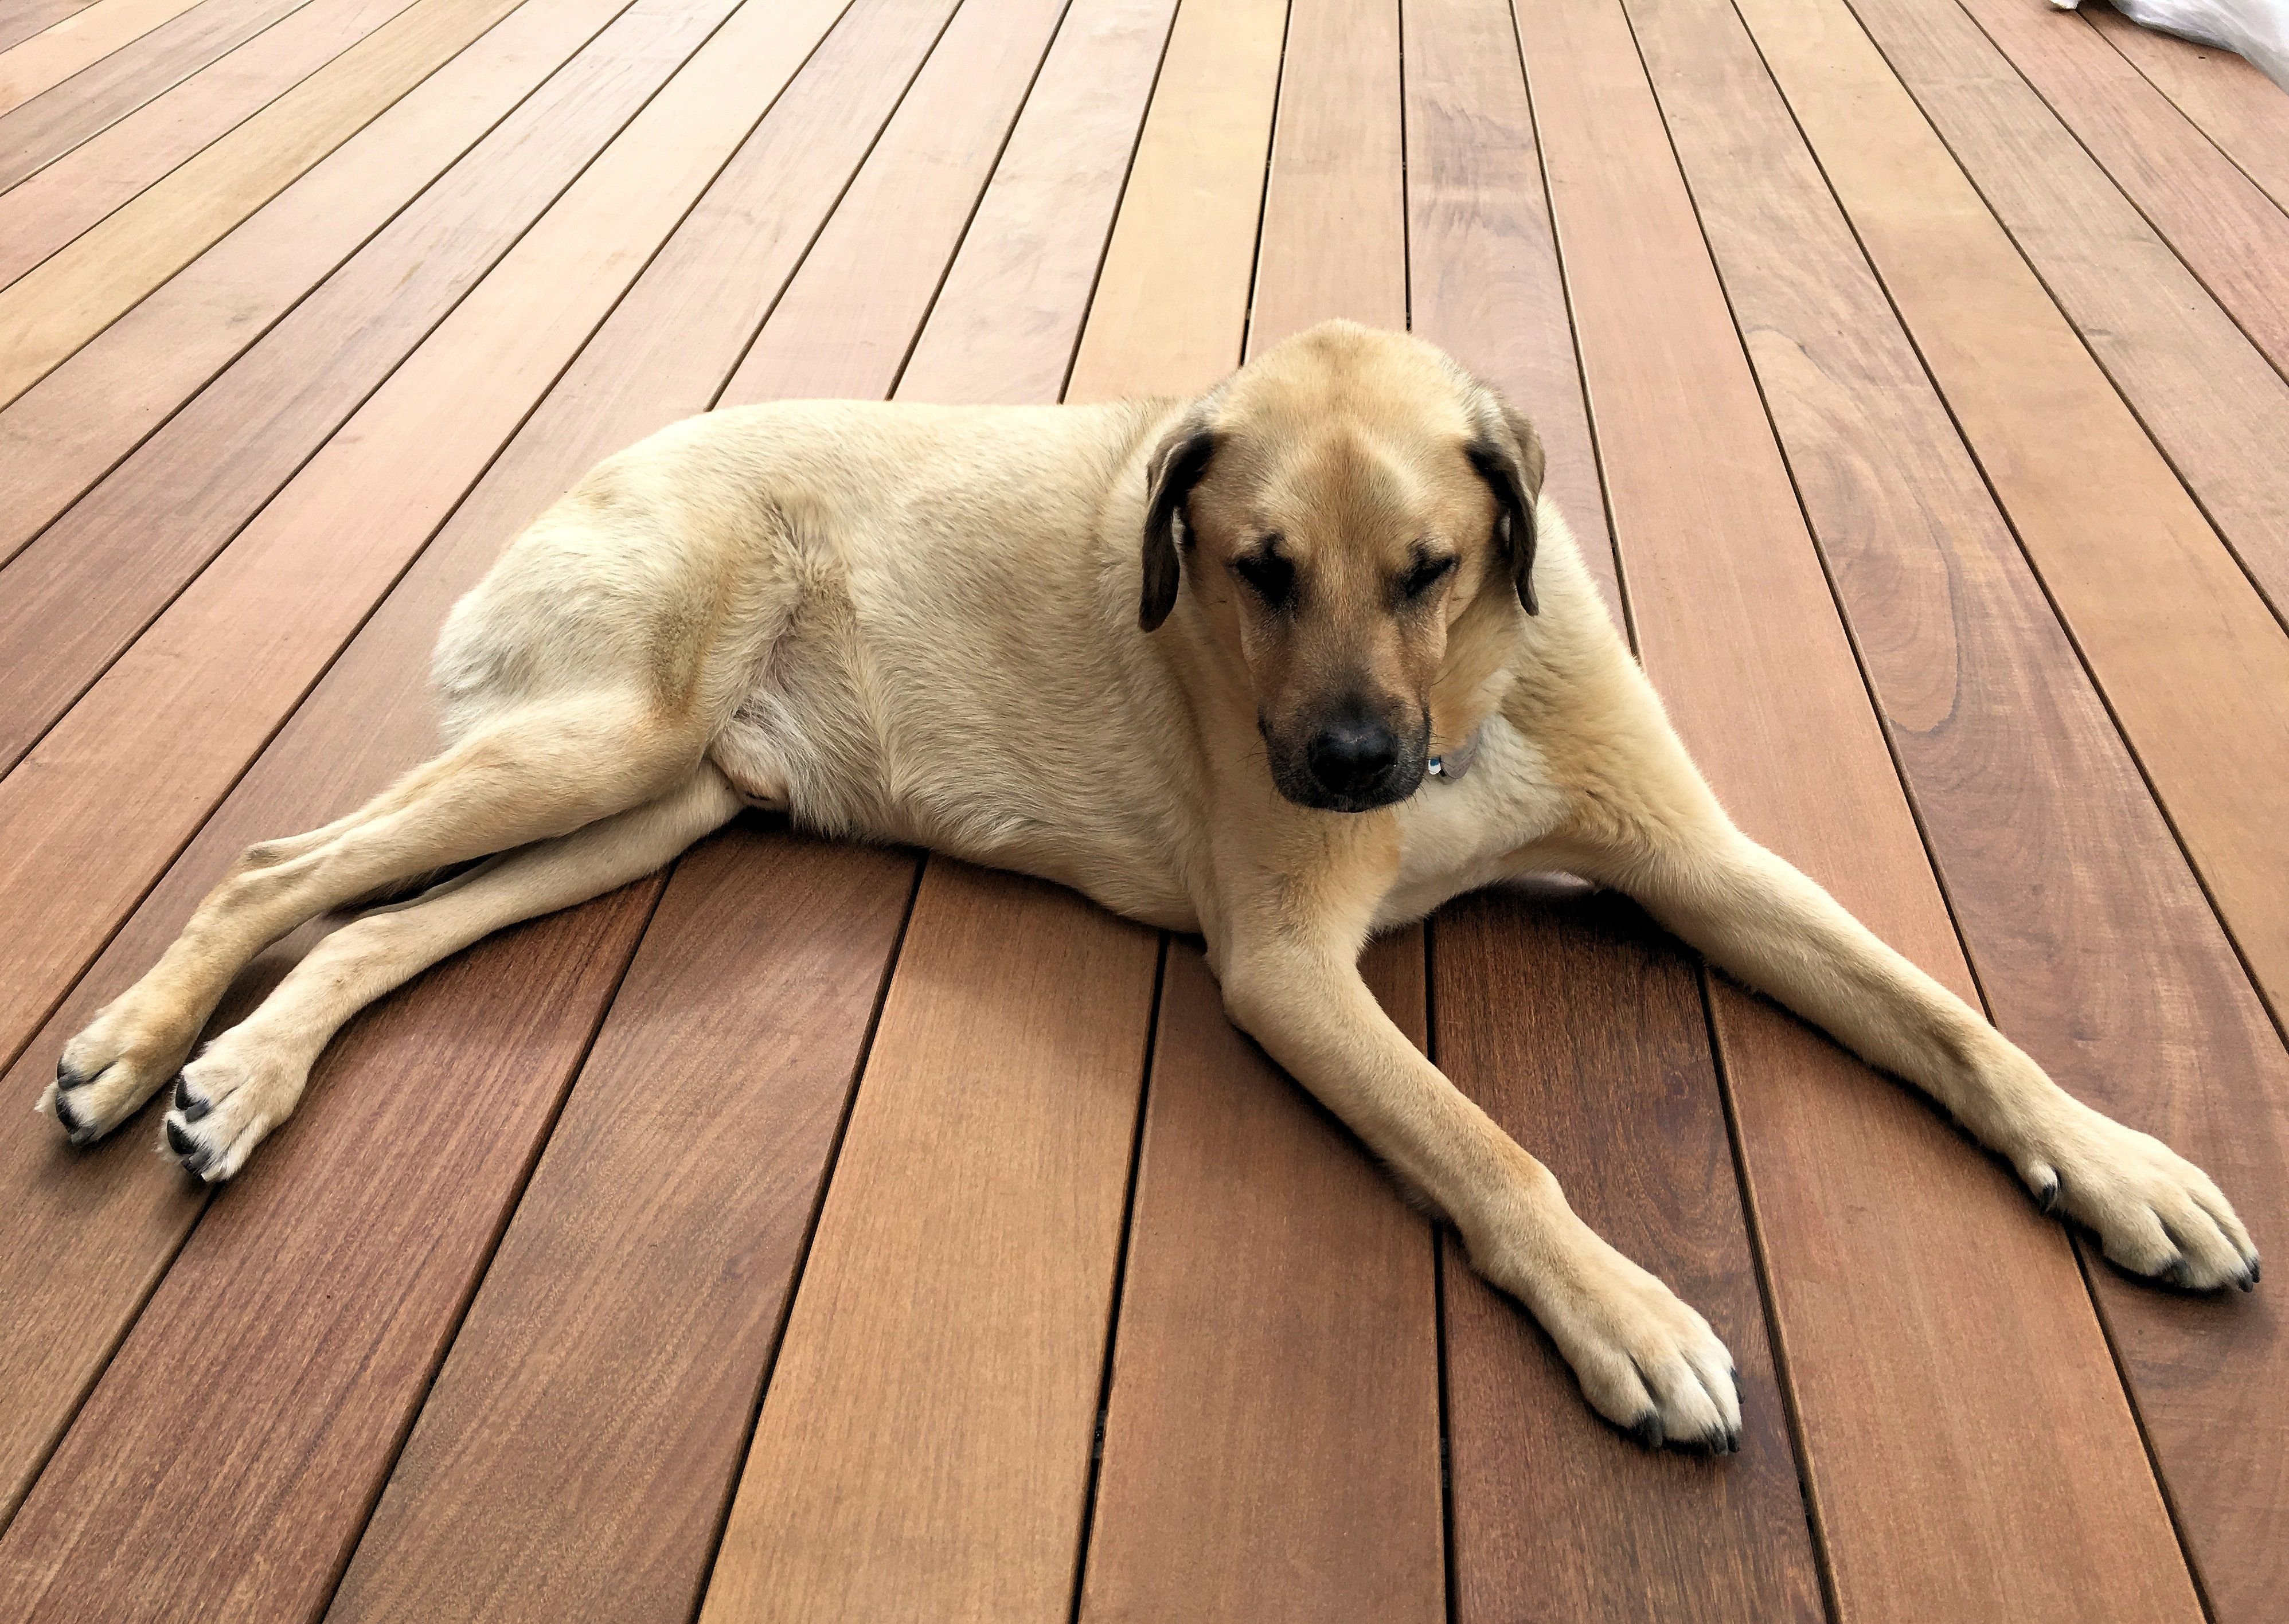 Gus - The Black Mouth Cur #BlackMouthCur #blackmouthcurdog Gus - The Black Mouth Cur #BlackMouthCur #blackmouthcurdog Gus - The Black Mouth Cur #BlackMouthCur #blackmouthcurdog Gus - The Black Mouth Cur #BlackMouthCur #blackmouthcurdog